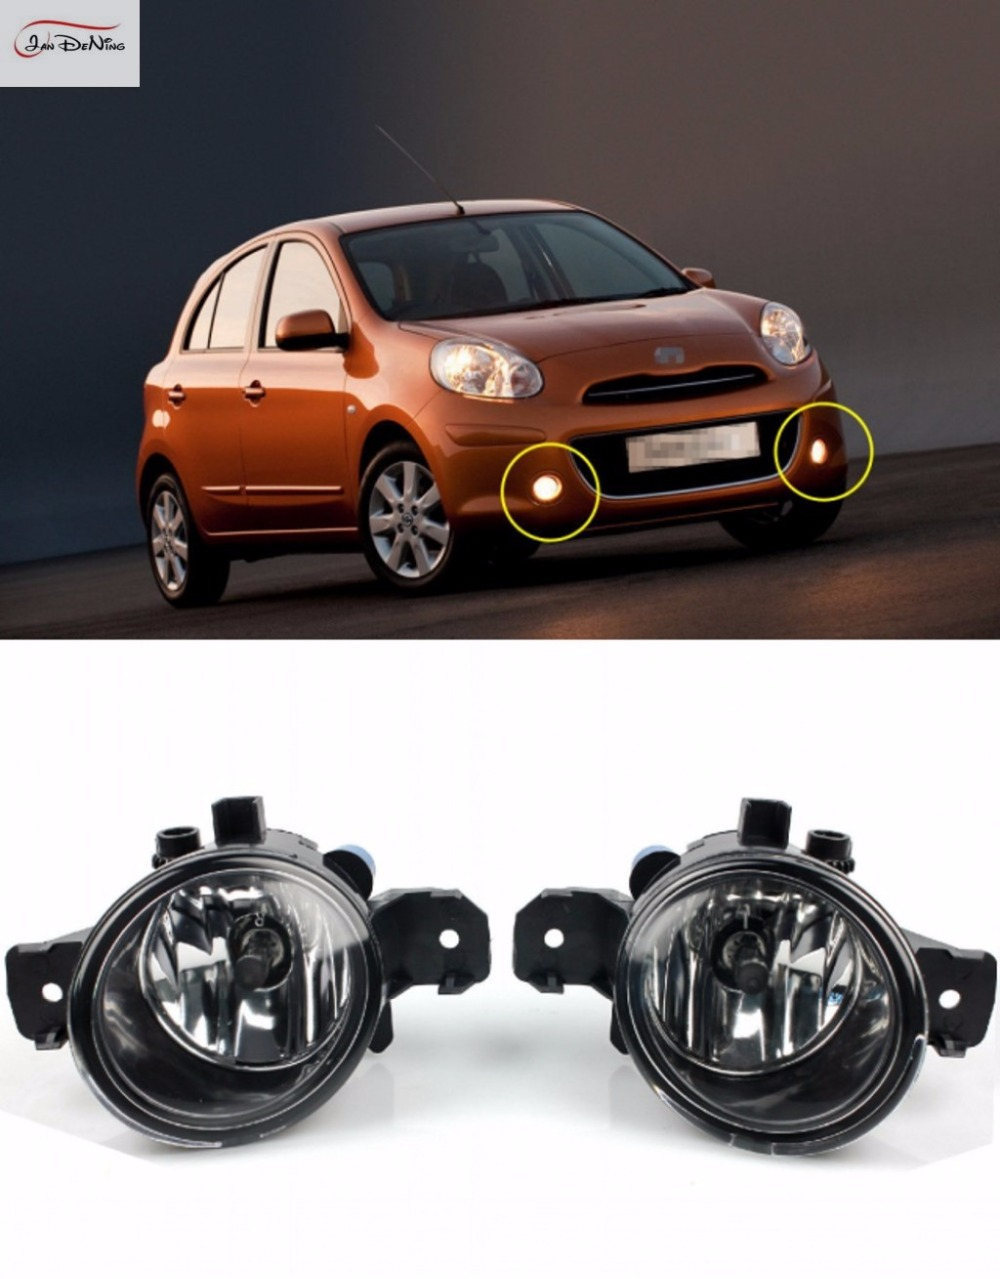 JanDeNing Car Fog Lights For Nissan Micra / March 2005~2010 Clear Front Fog Lamp Light Replace Assembly kit (one Pair) car fog lights lamp for mitsubishi triton 2 door 2009 on clear lens pair set wiring kit fog light set free shipping